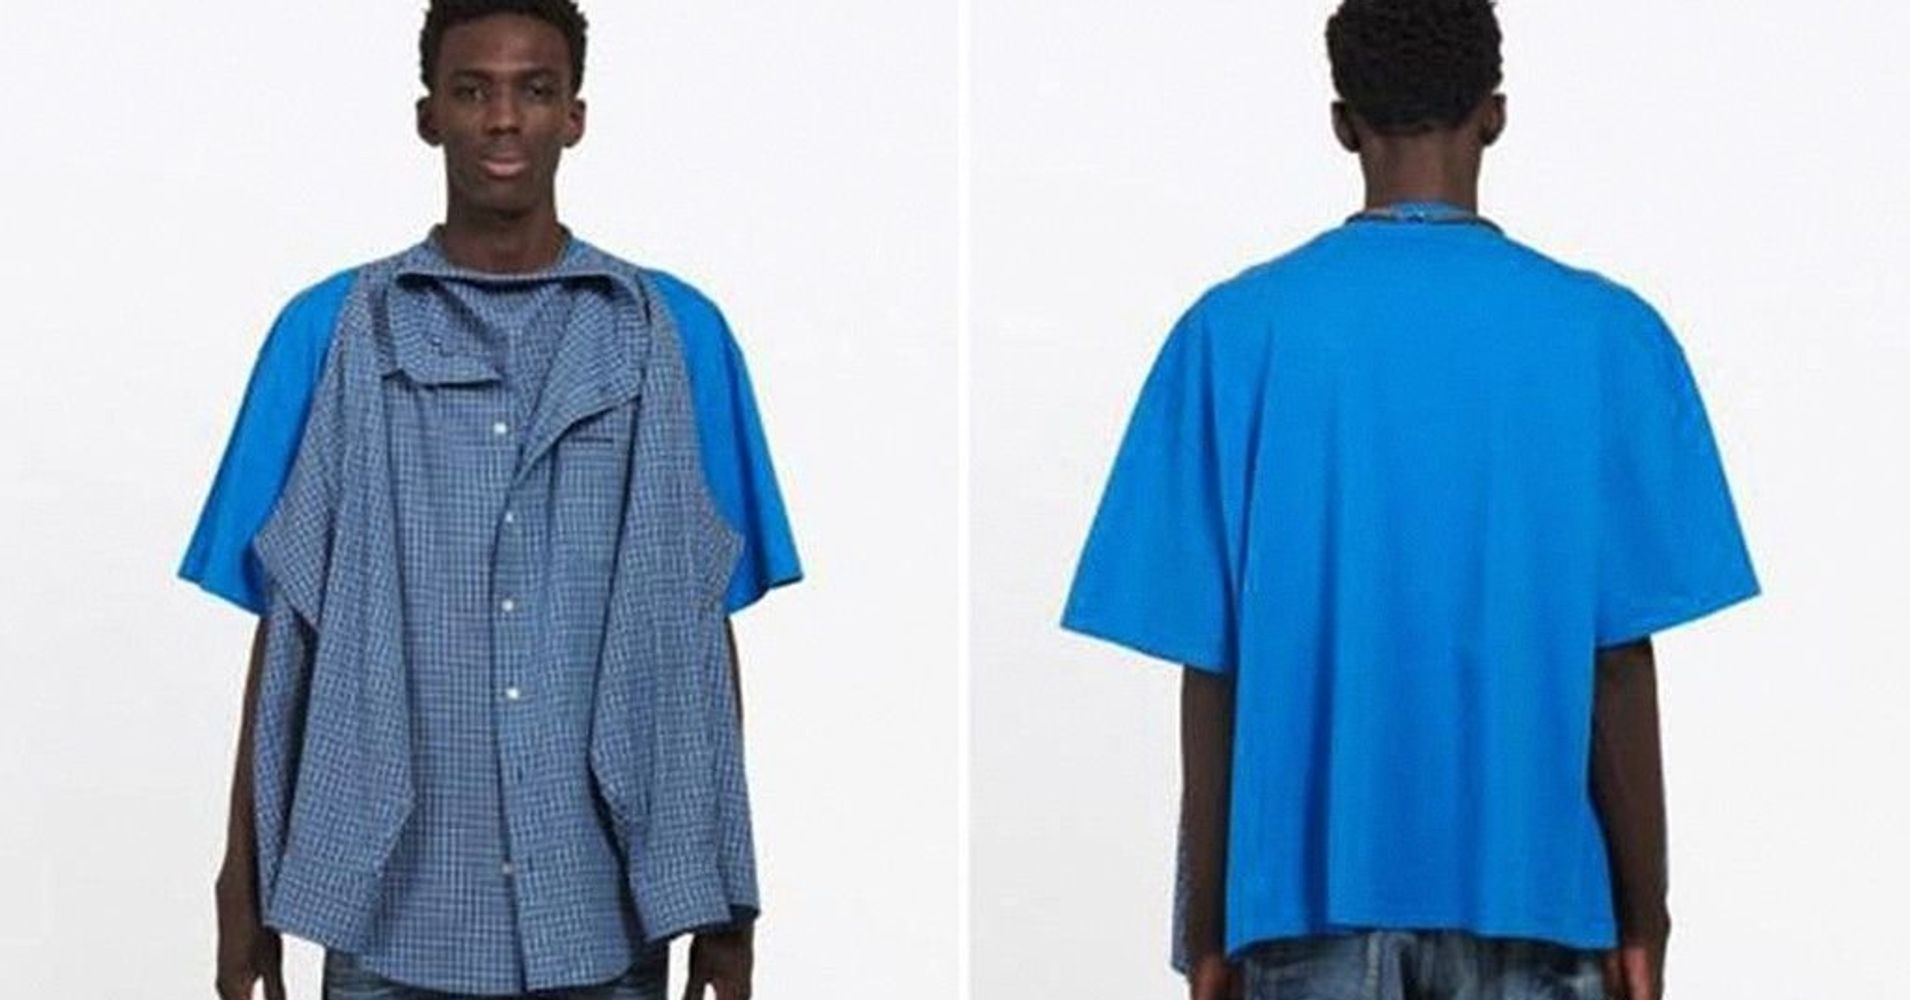 d16e661a Balenciaga Is Selling A Shirt With A Shirt Attached To It For $1,290 |  HuffPost Life